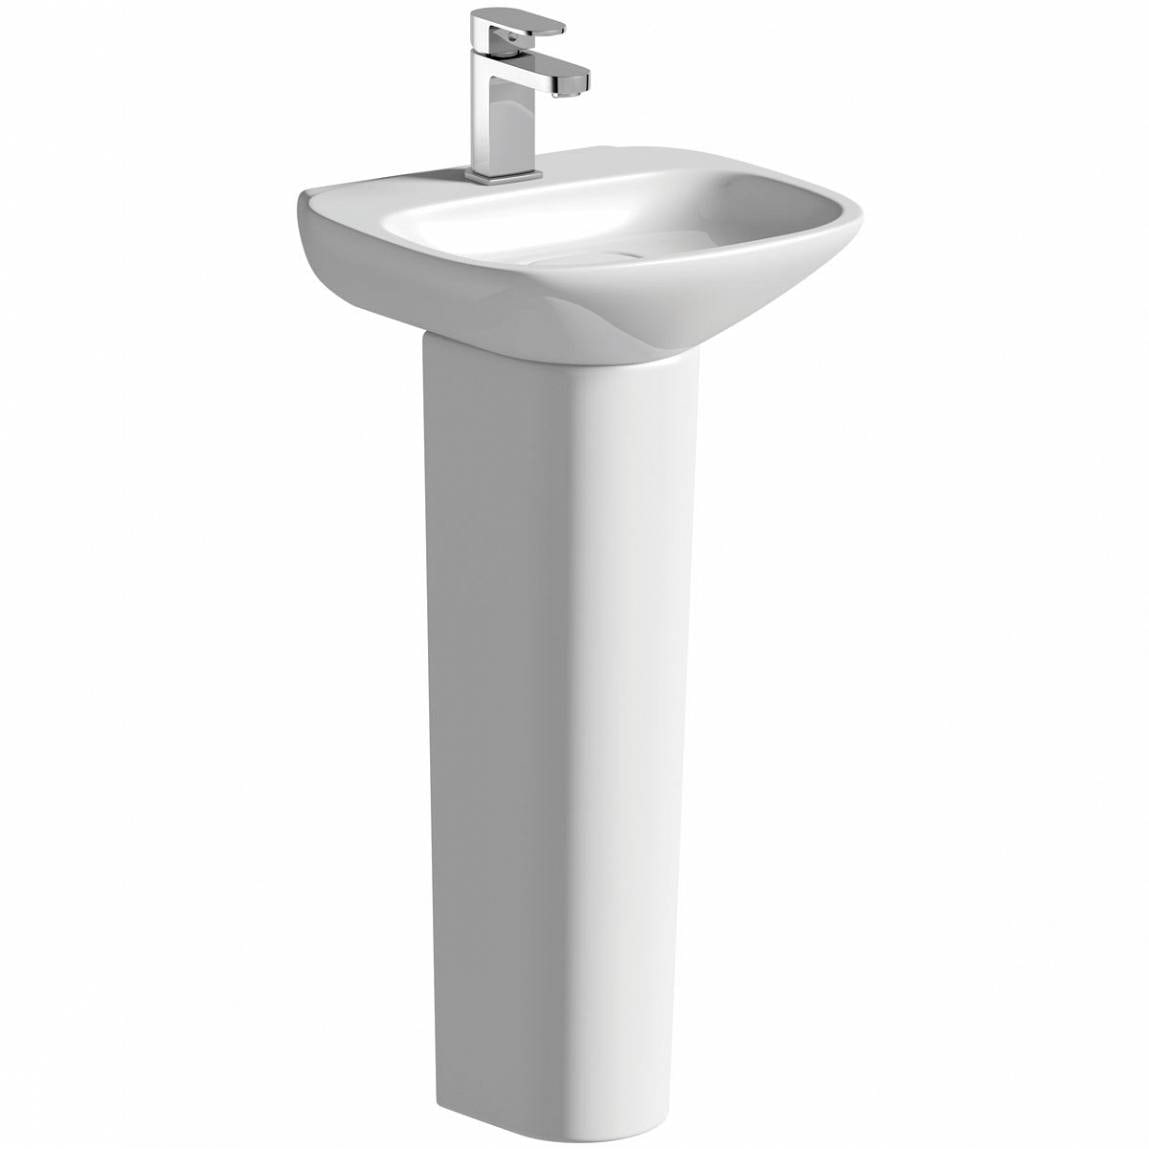 Mode Heath 1 tap hole full pedestal basin 400mm